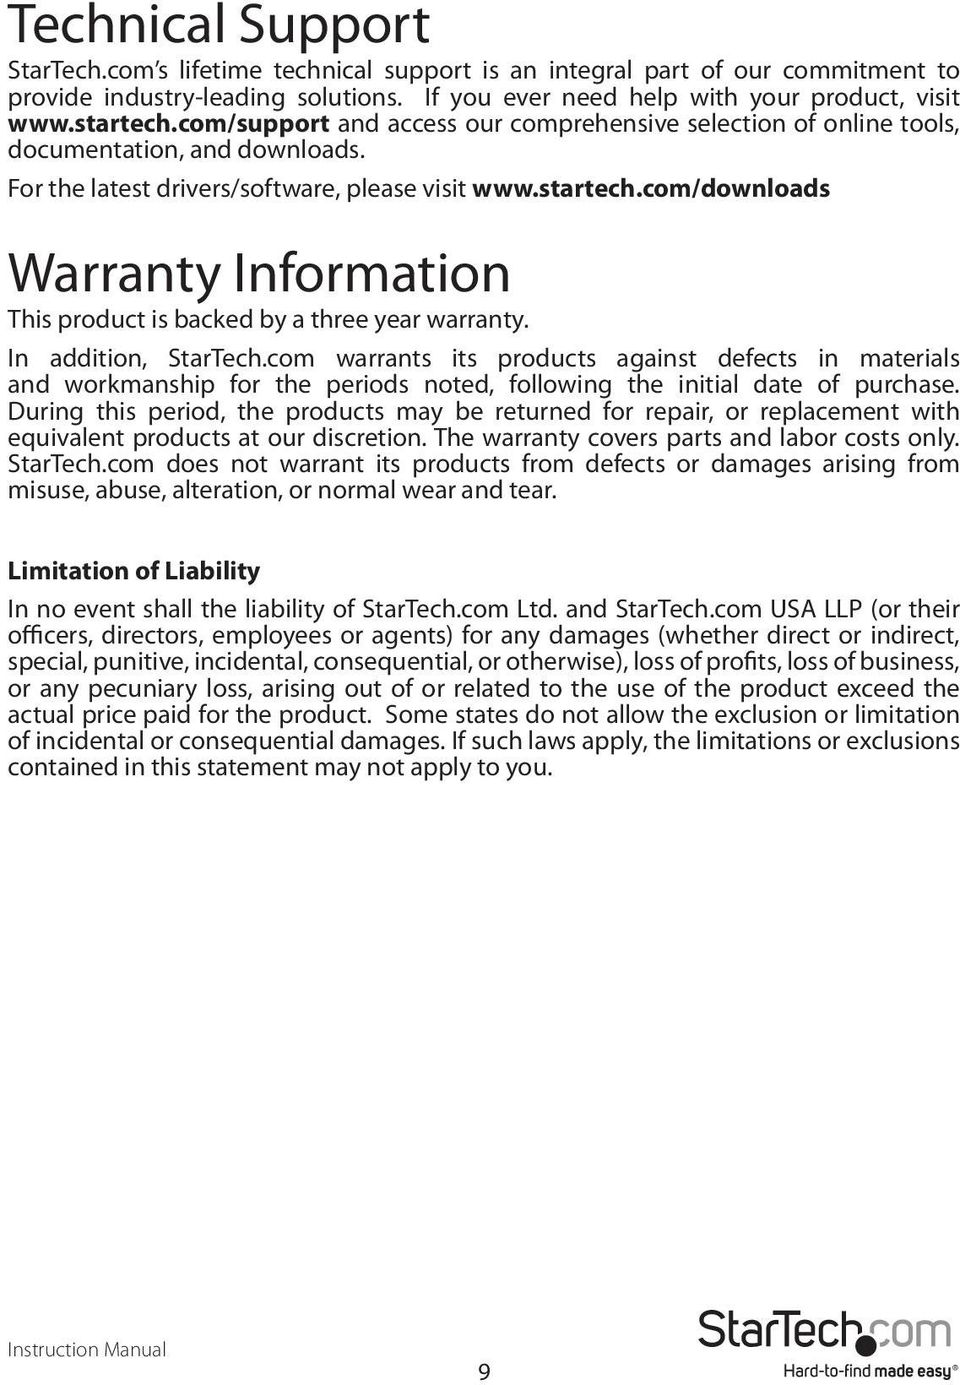 com/downloads Warranty Information This product is backed by a three year warranty. In addition, StarTech.